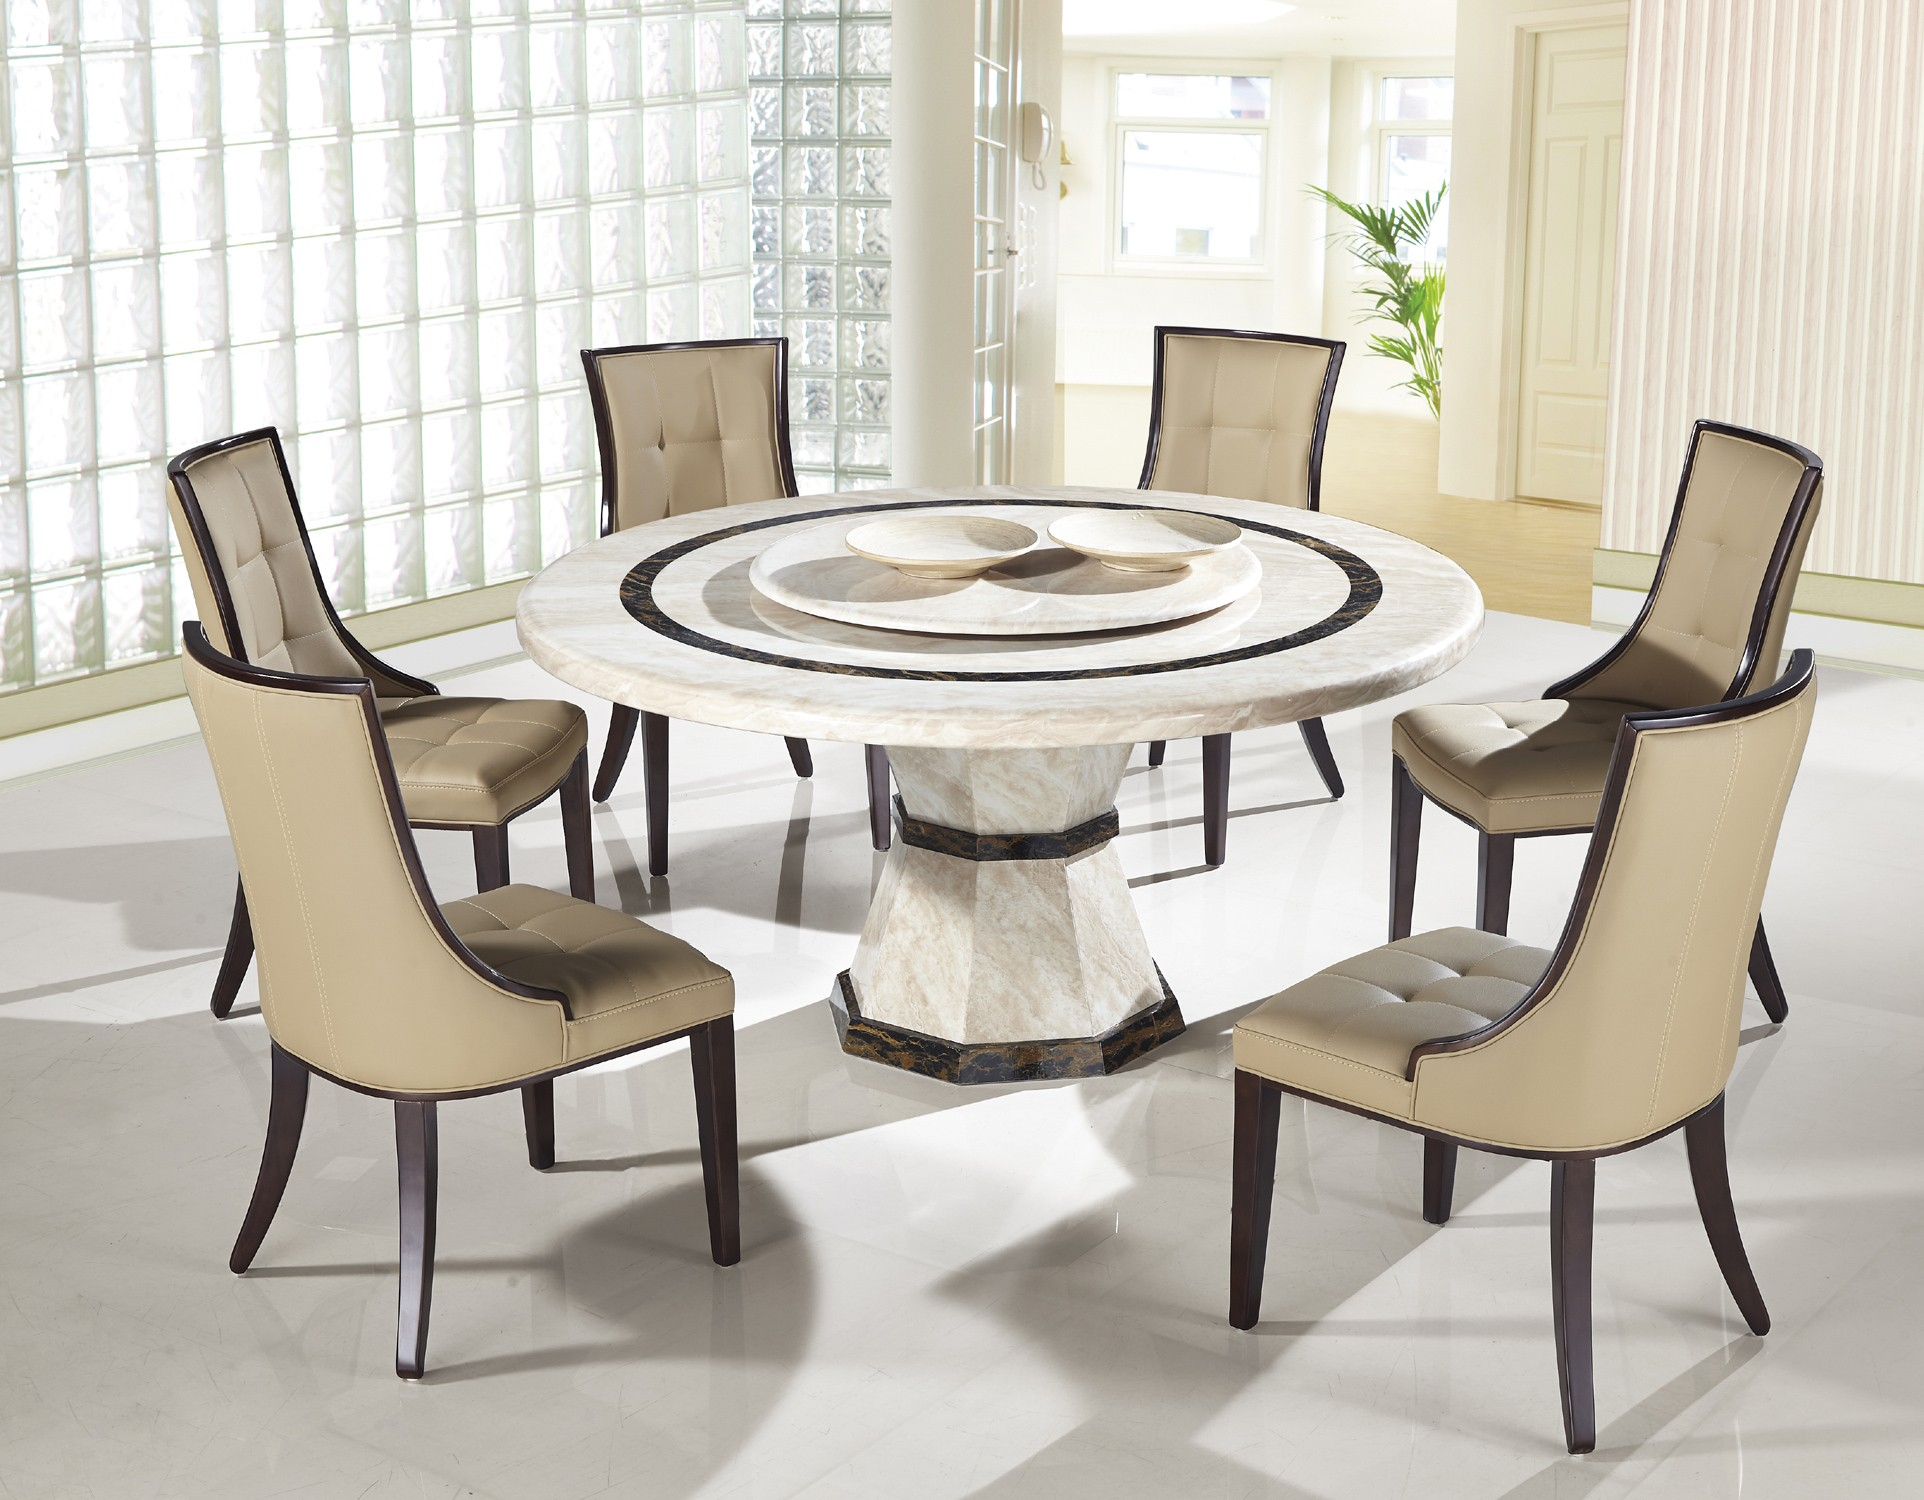 Modern Round Dining Set Shop For Affordable Home Furniture Decor Outdoors And More